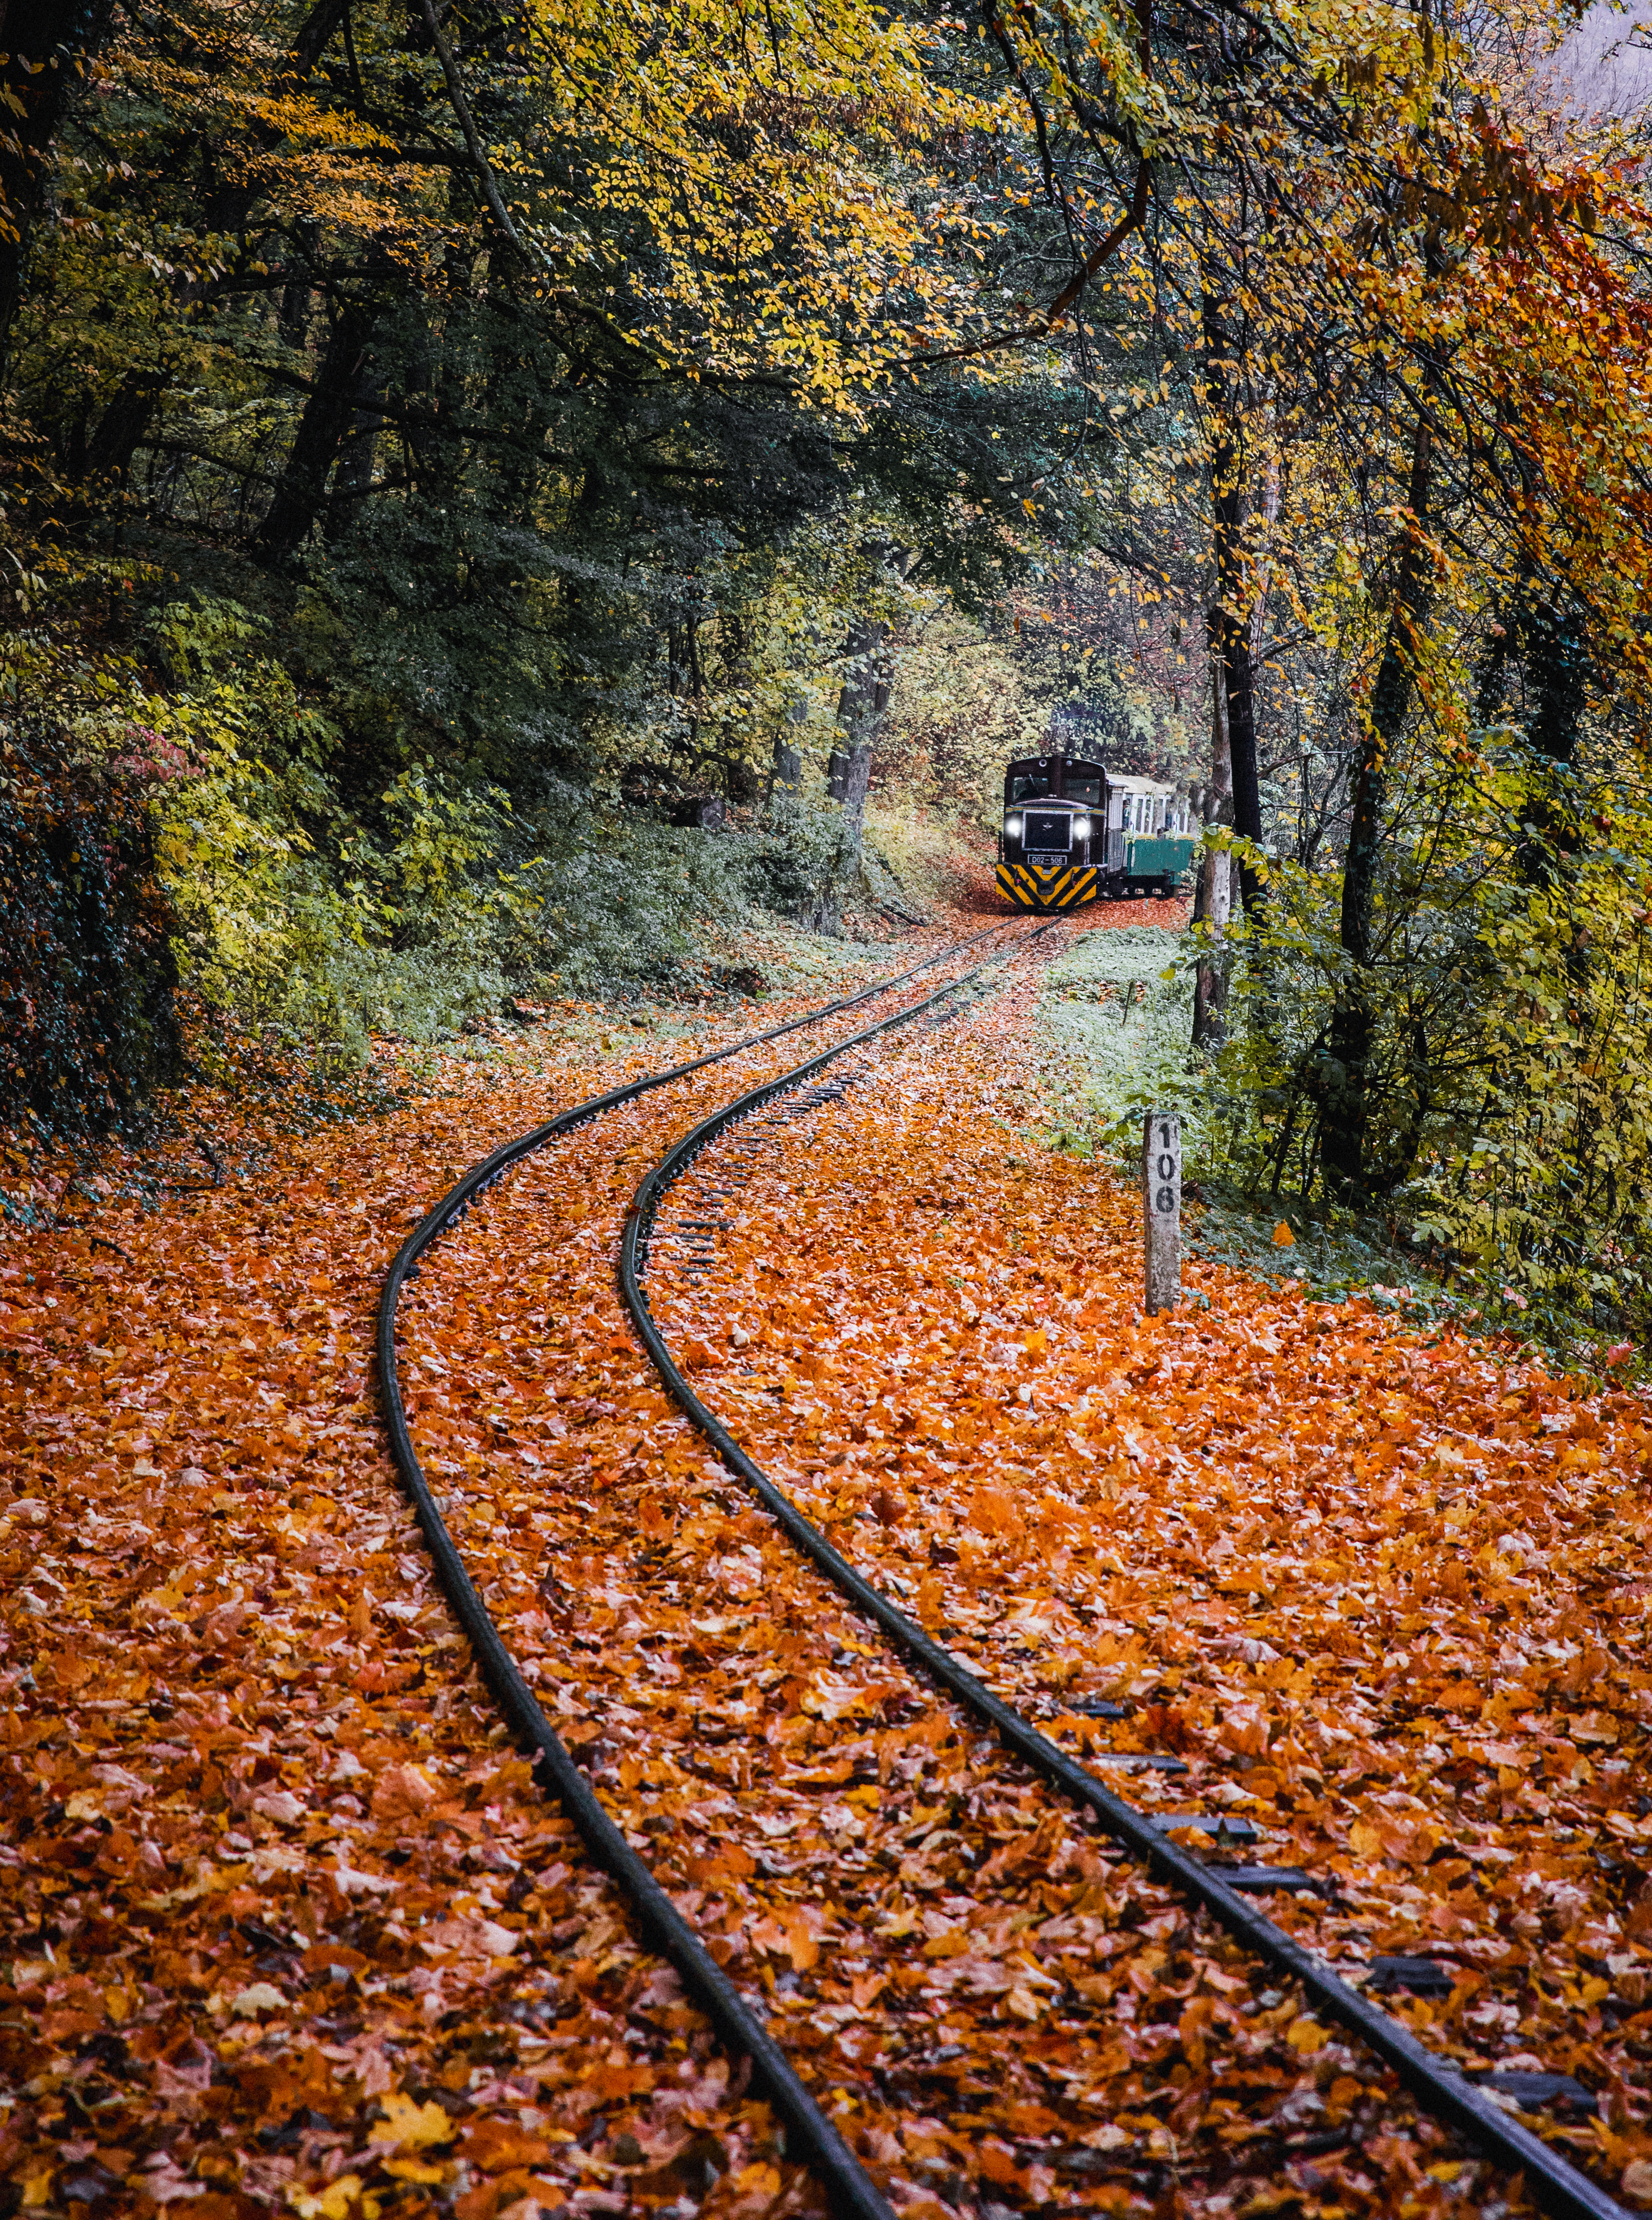 Green Train Surrounded by Trees